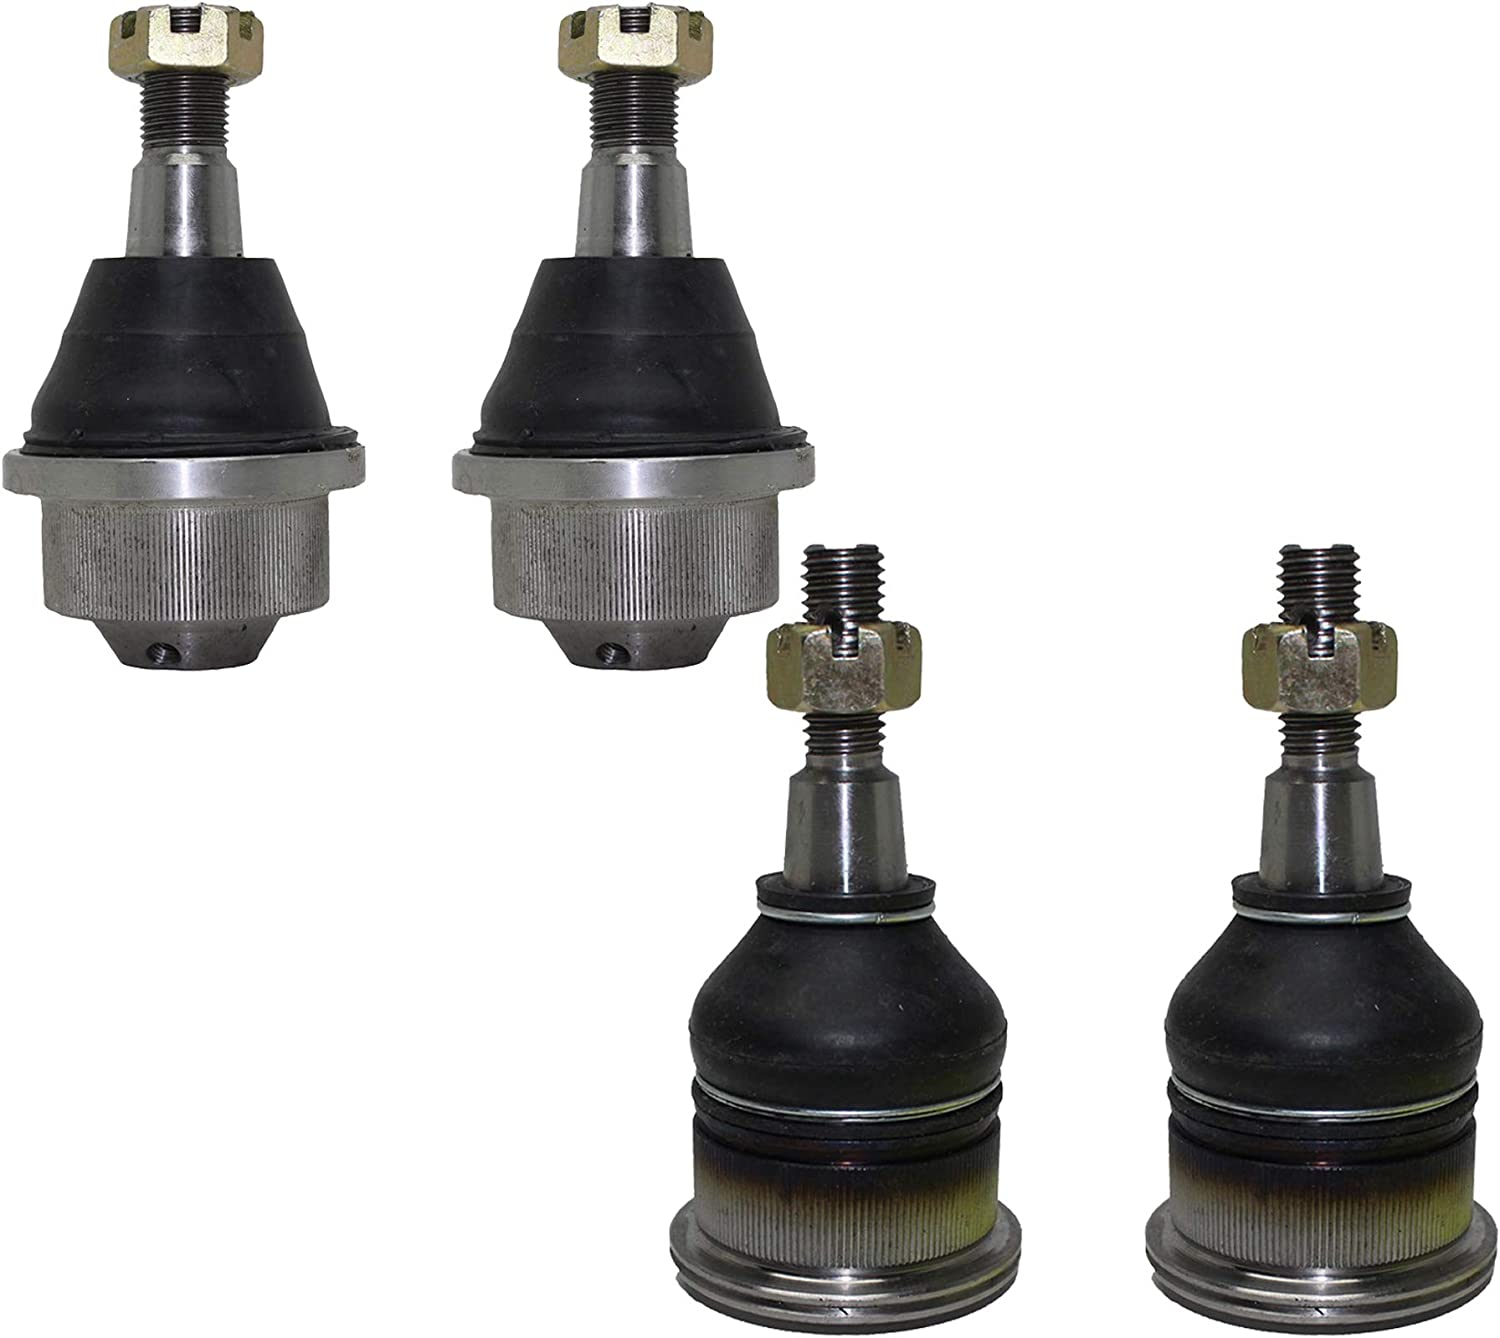 Ball Joint Front Upper Lower Kit Set of 4 for Chevy GMC Silverado Sierra Yukon